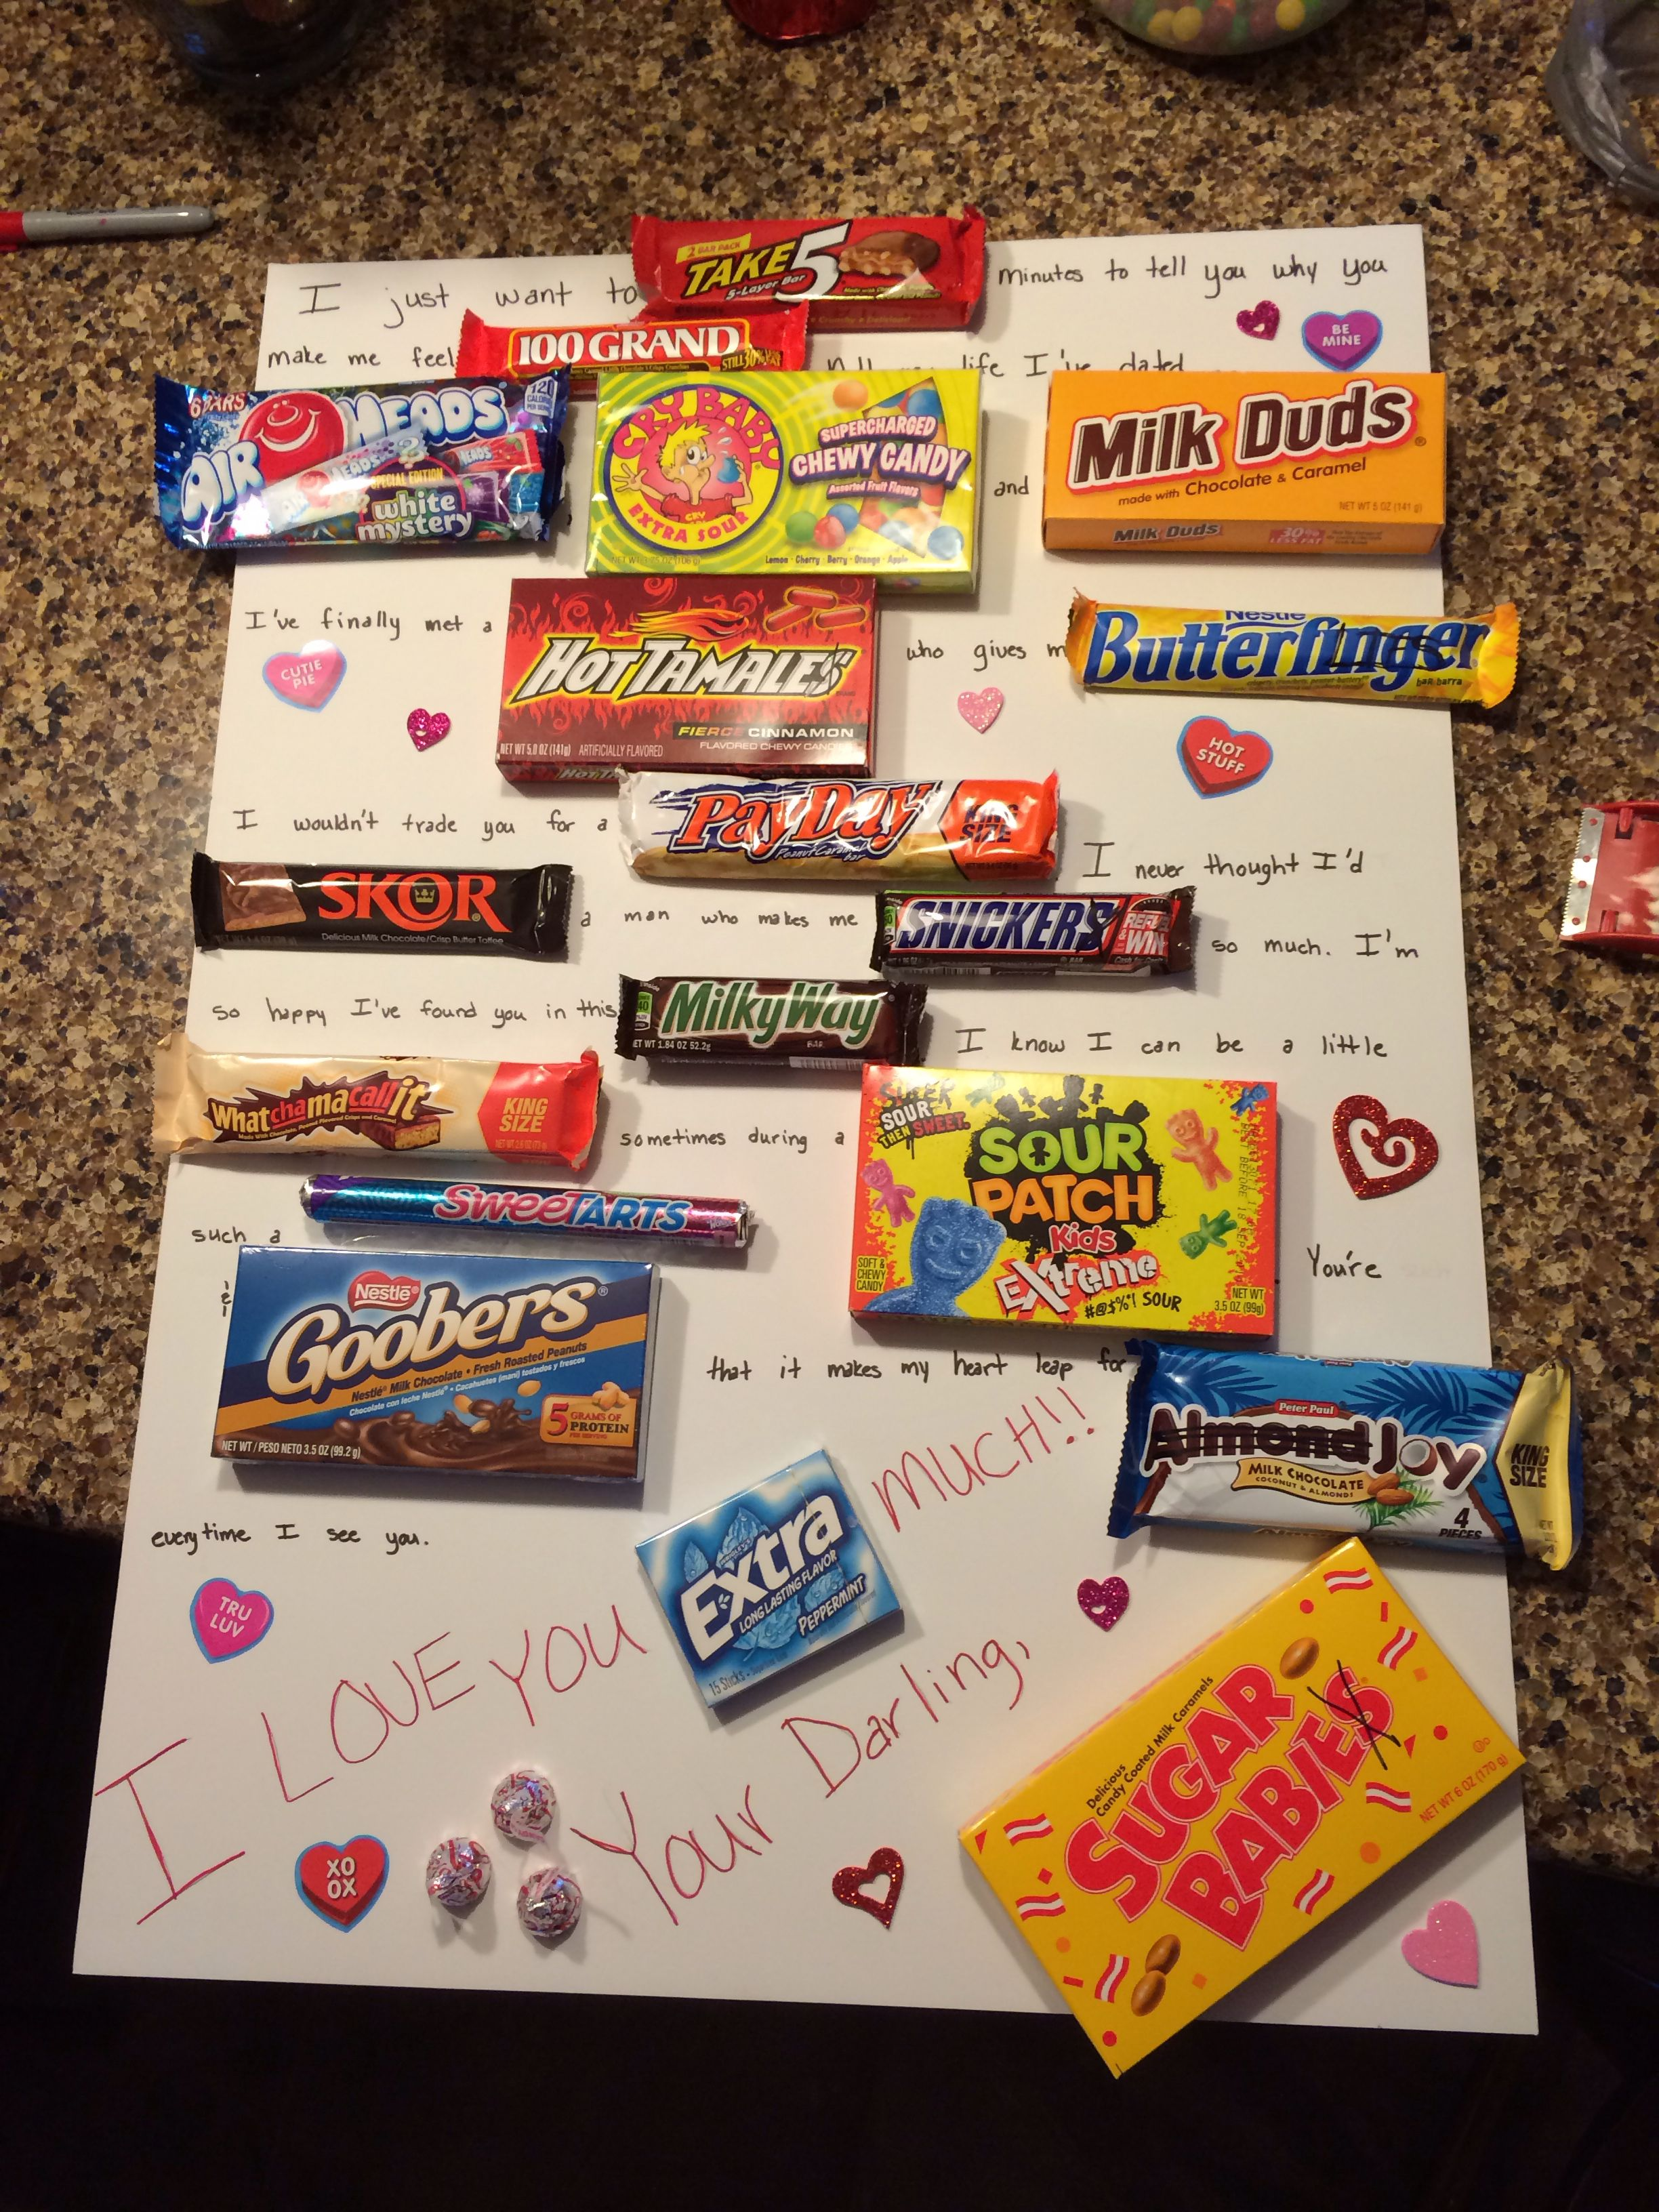 A cute valentines day candy card my friend had the idea to